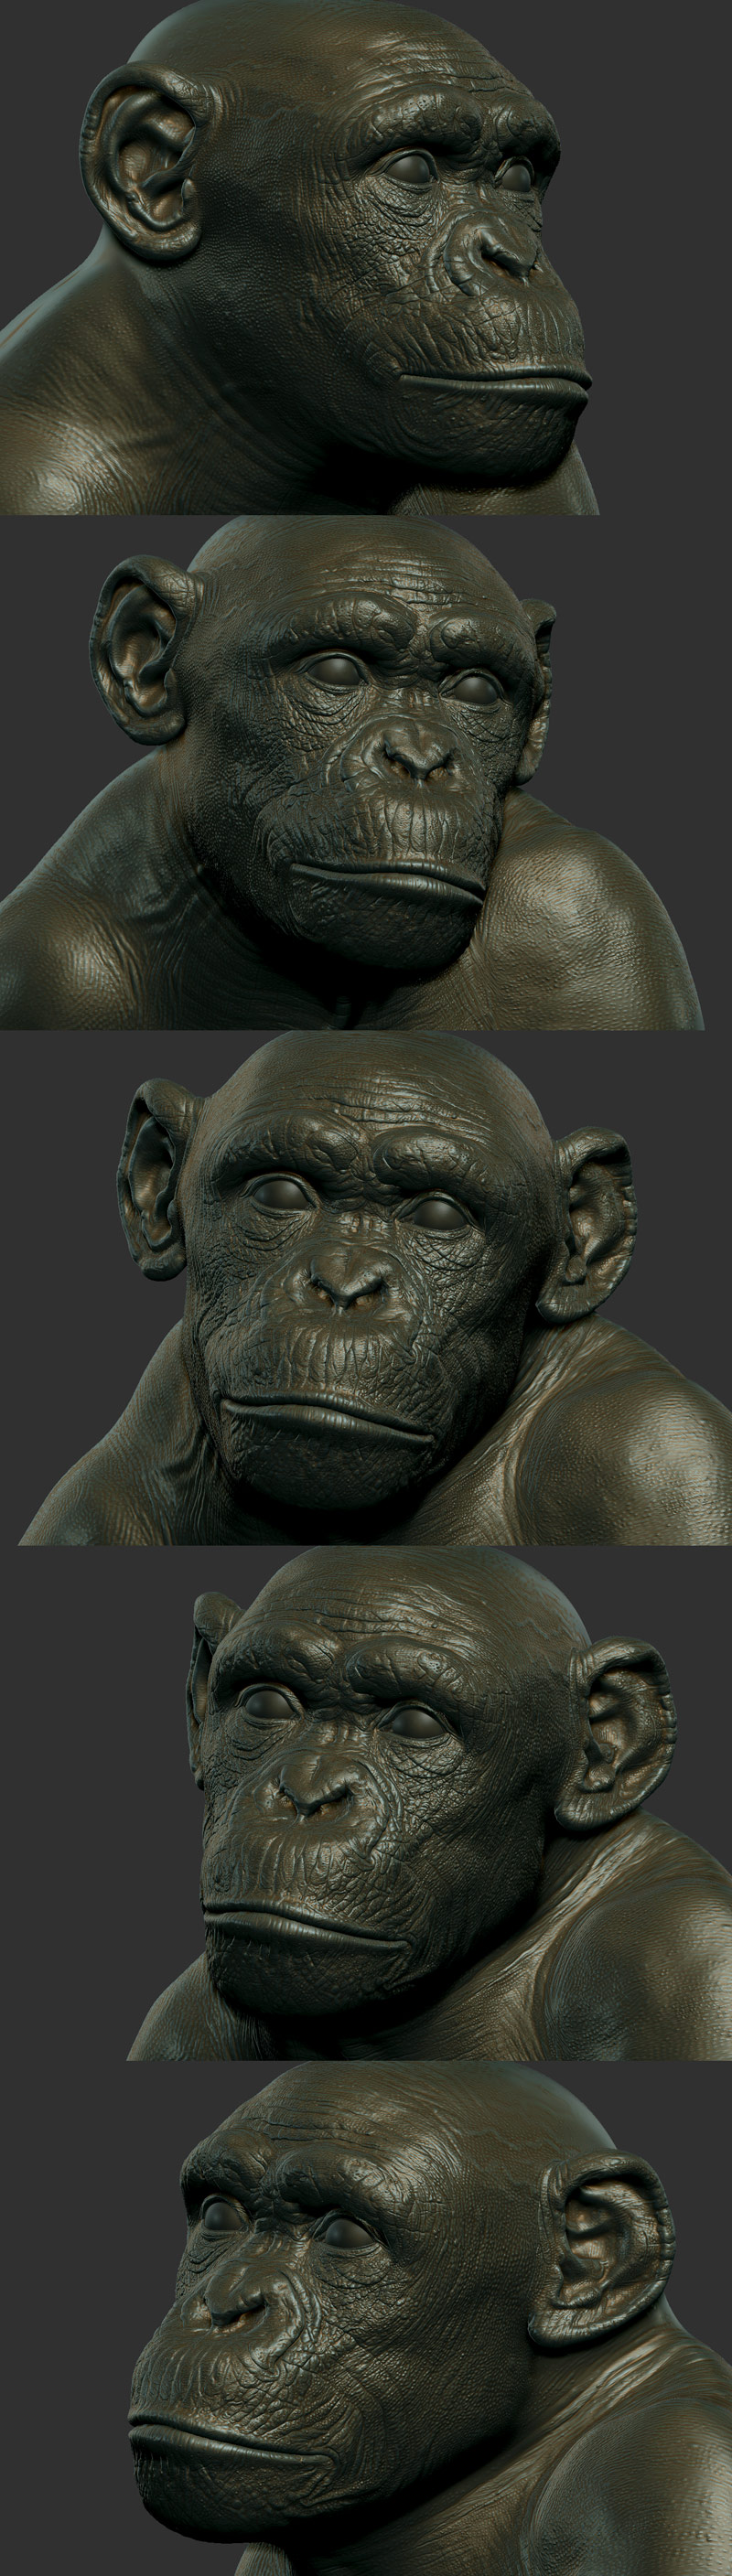 Zbrush_ScreenShots_ZB.jpg